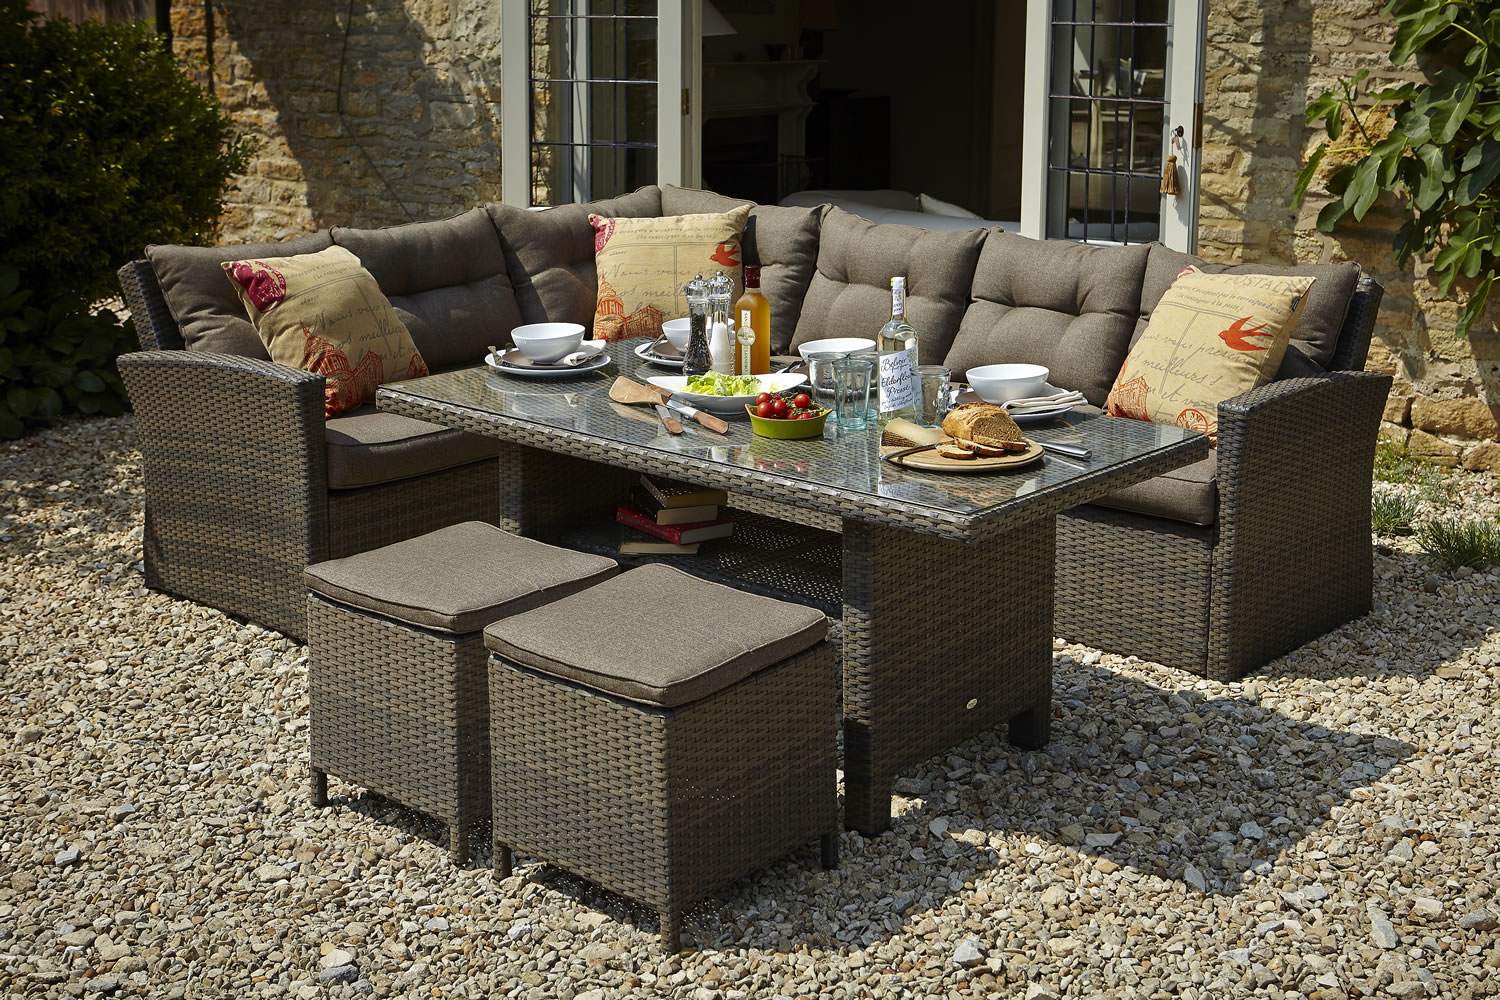 casual dining garden furniture set 960 garden4less uk shop lovely outdoor furniture for less